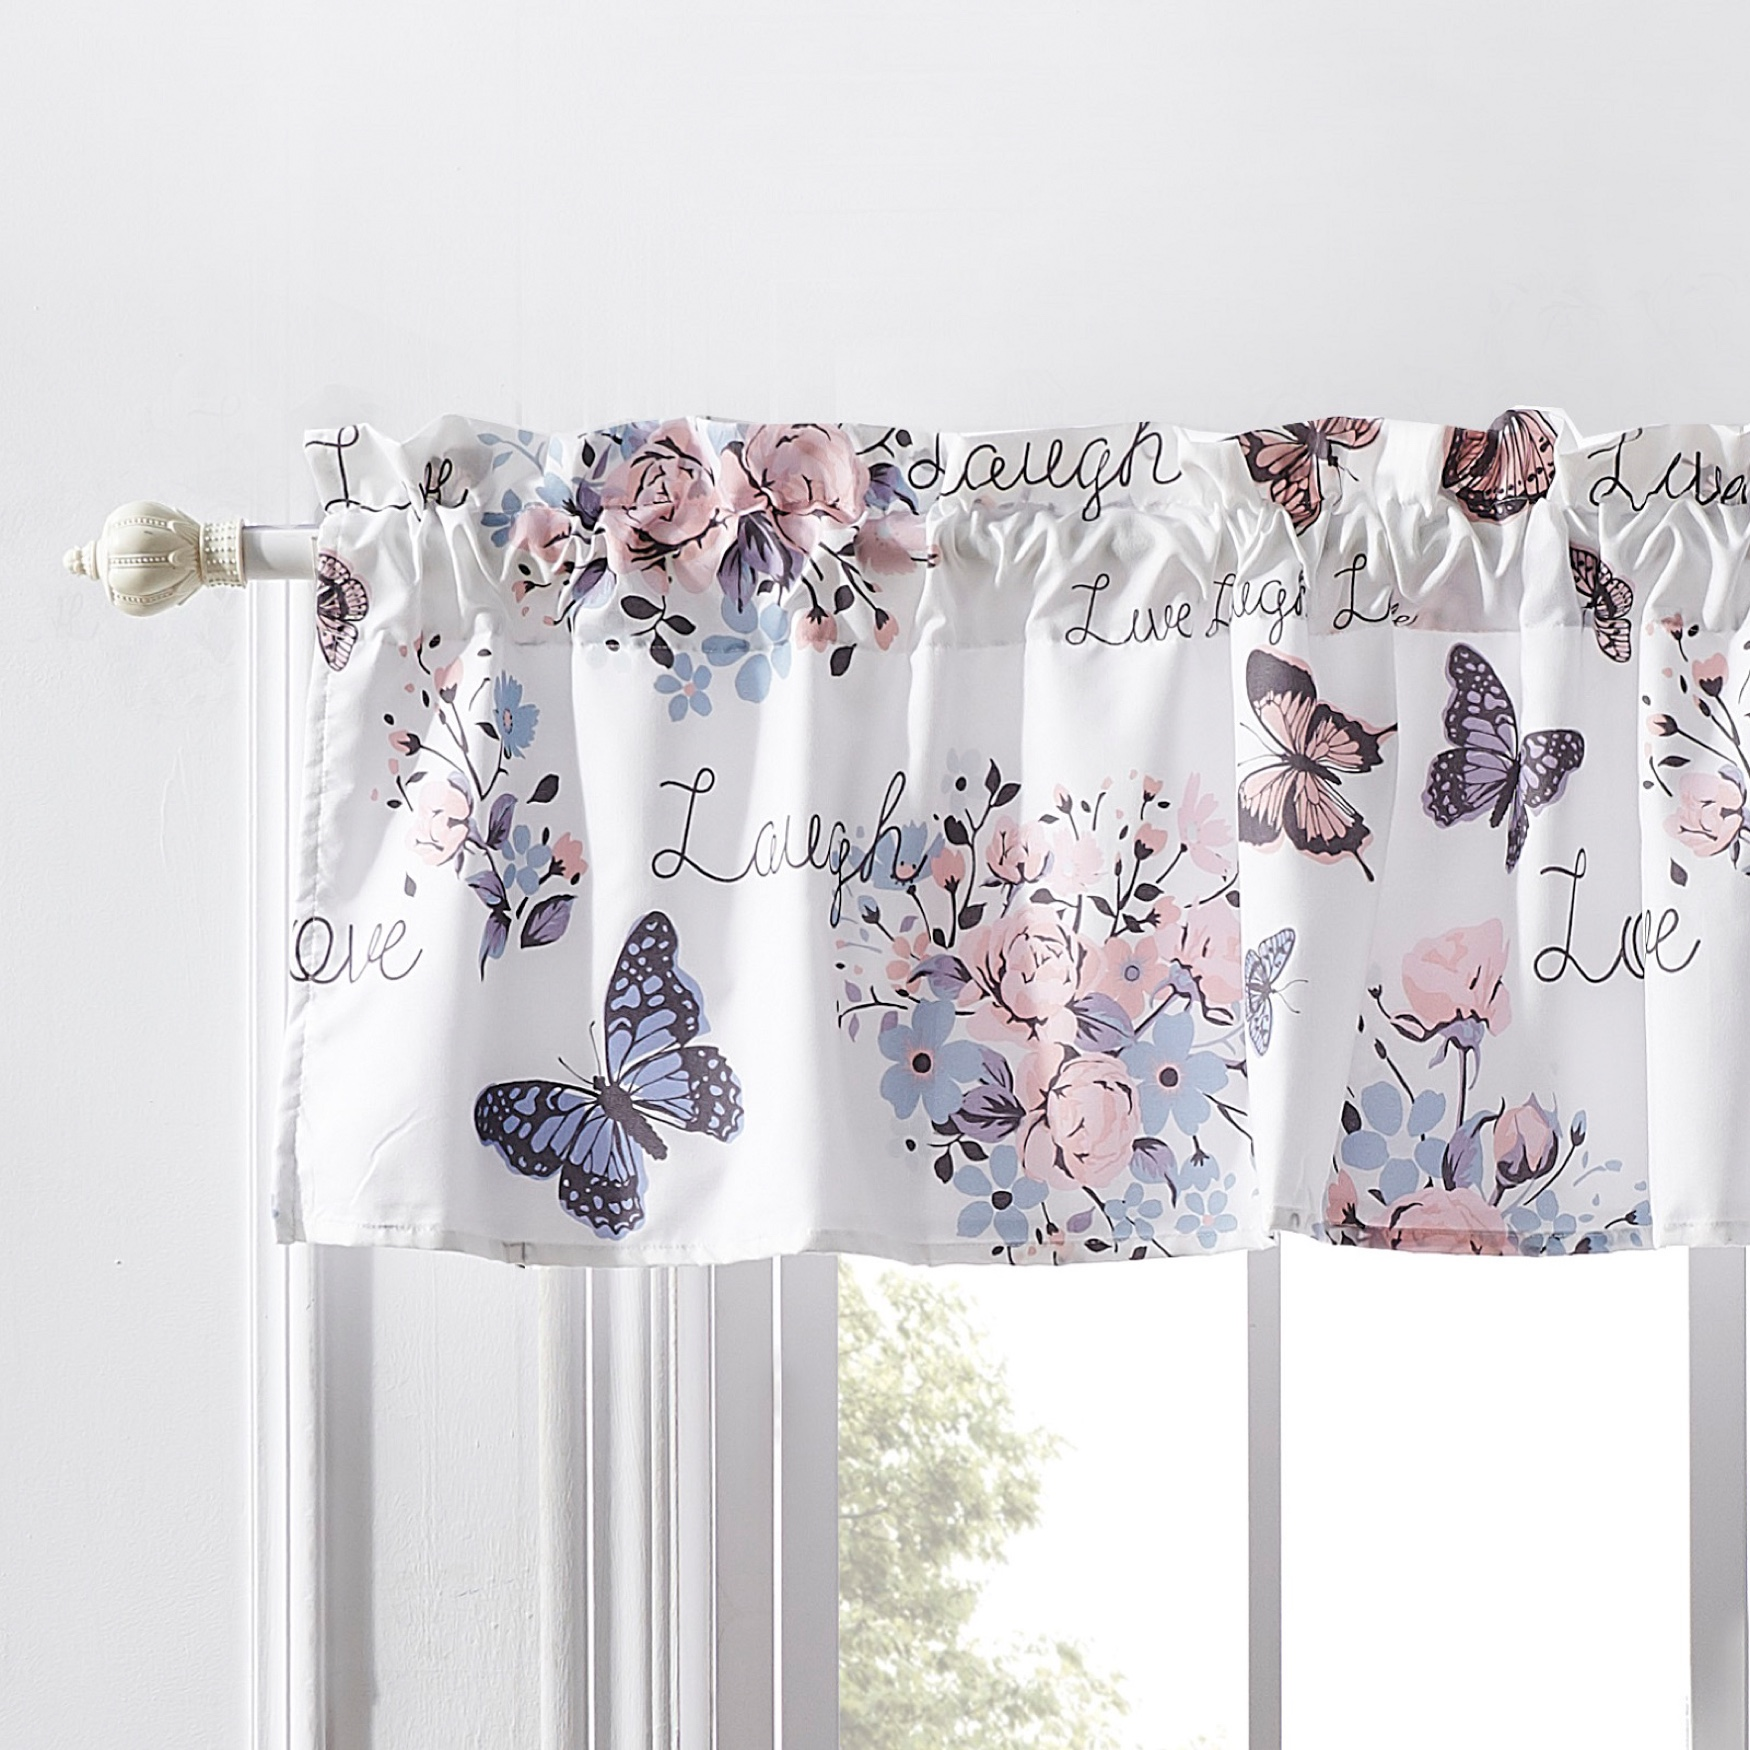 Barefoot Bungalow Garden Joy Window Valance, WHITE